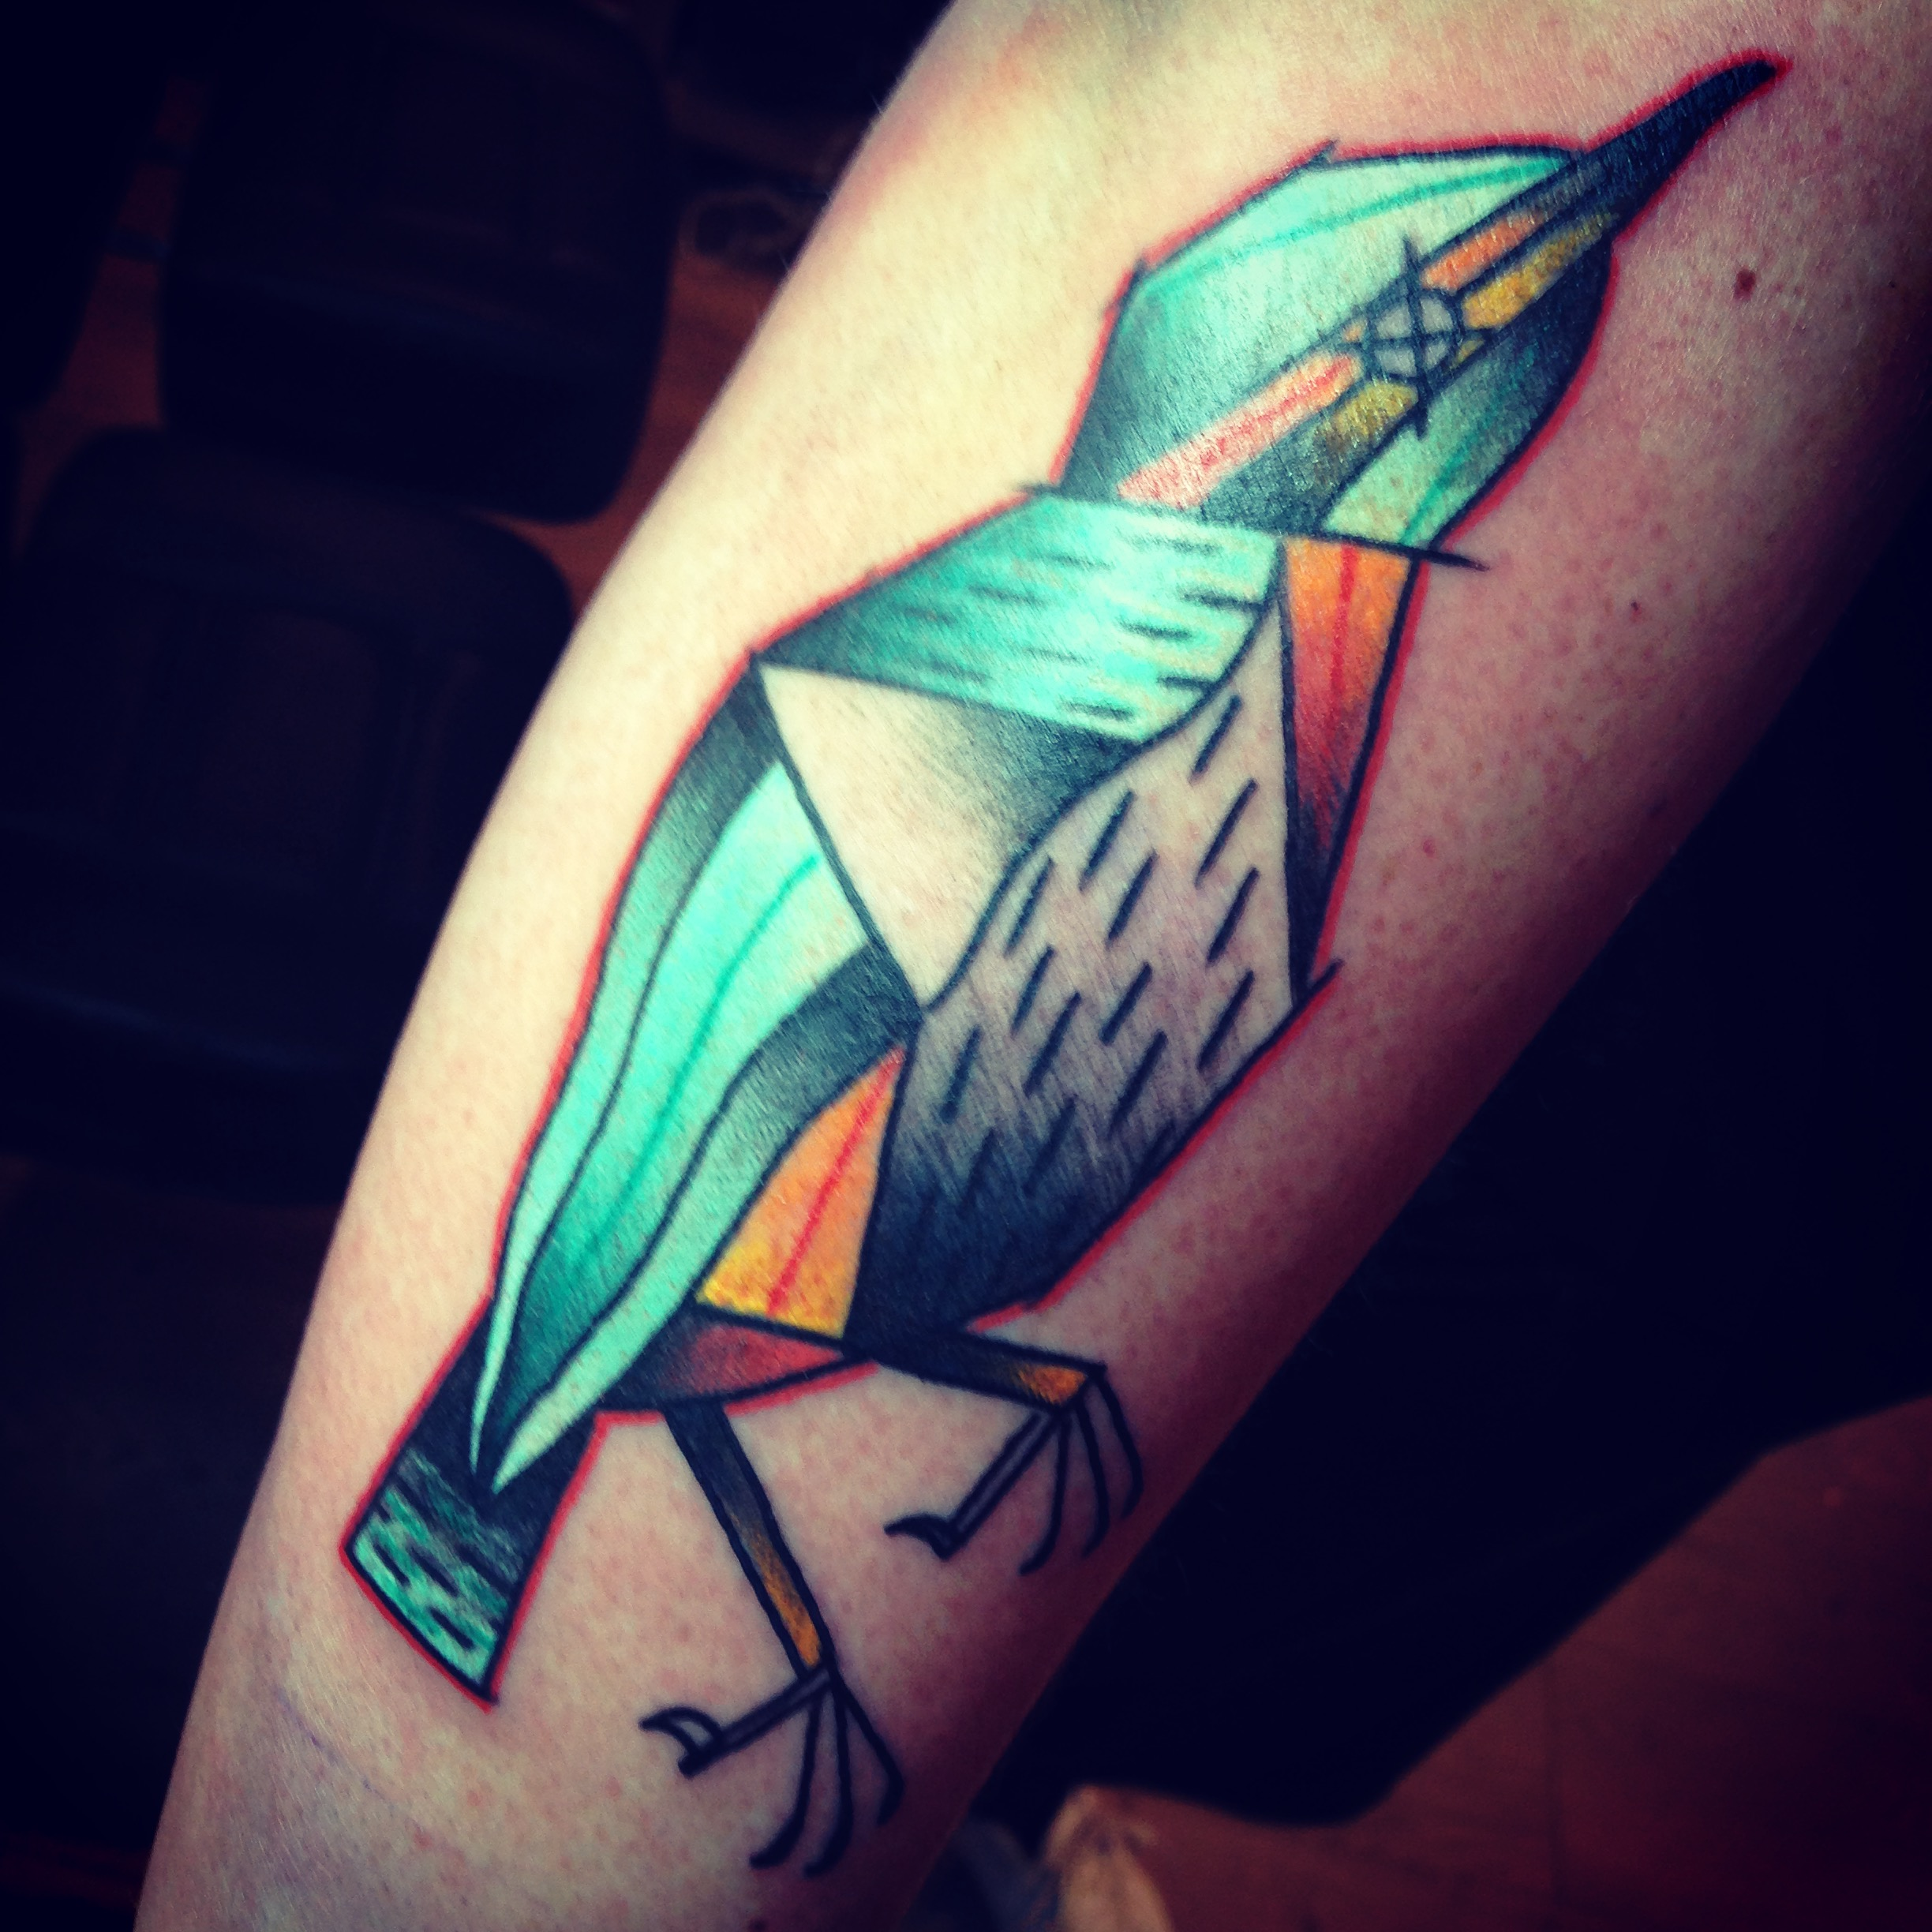 Dead bird tattoo